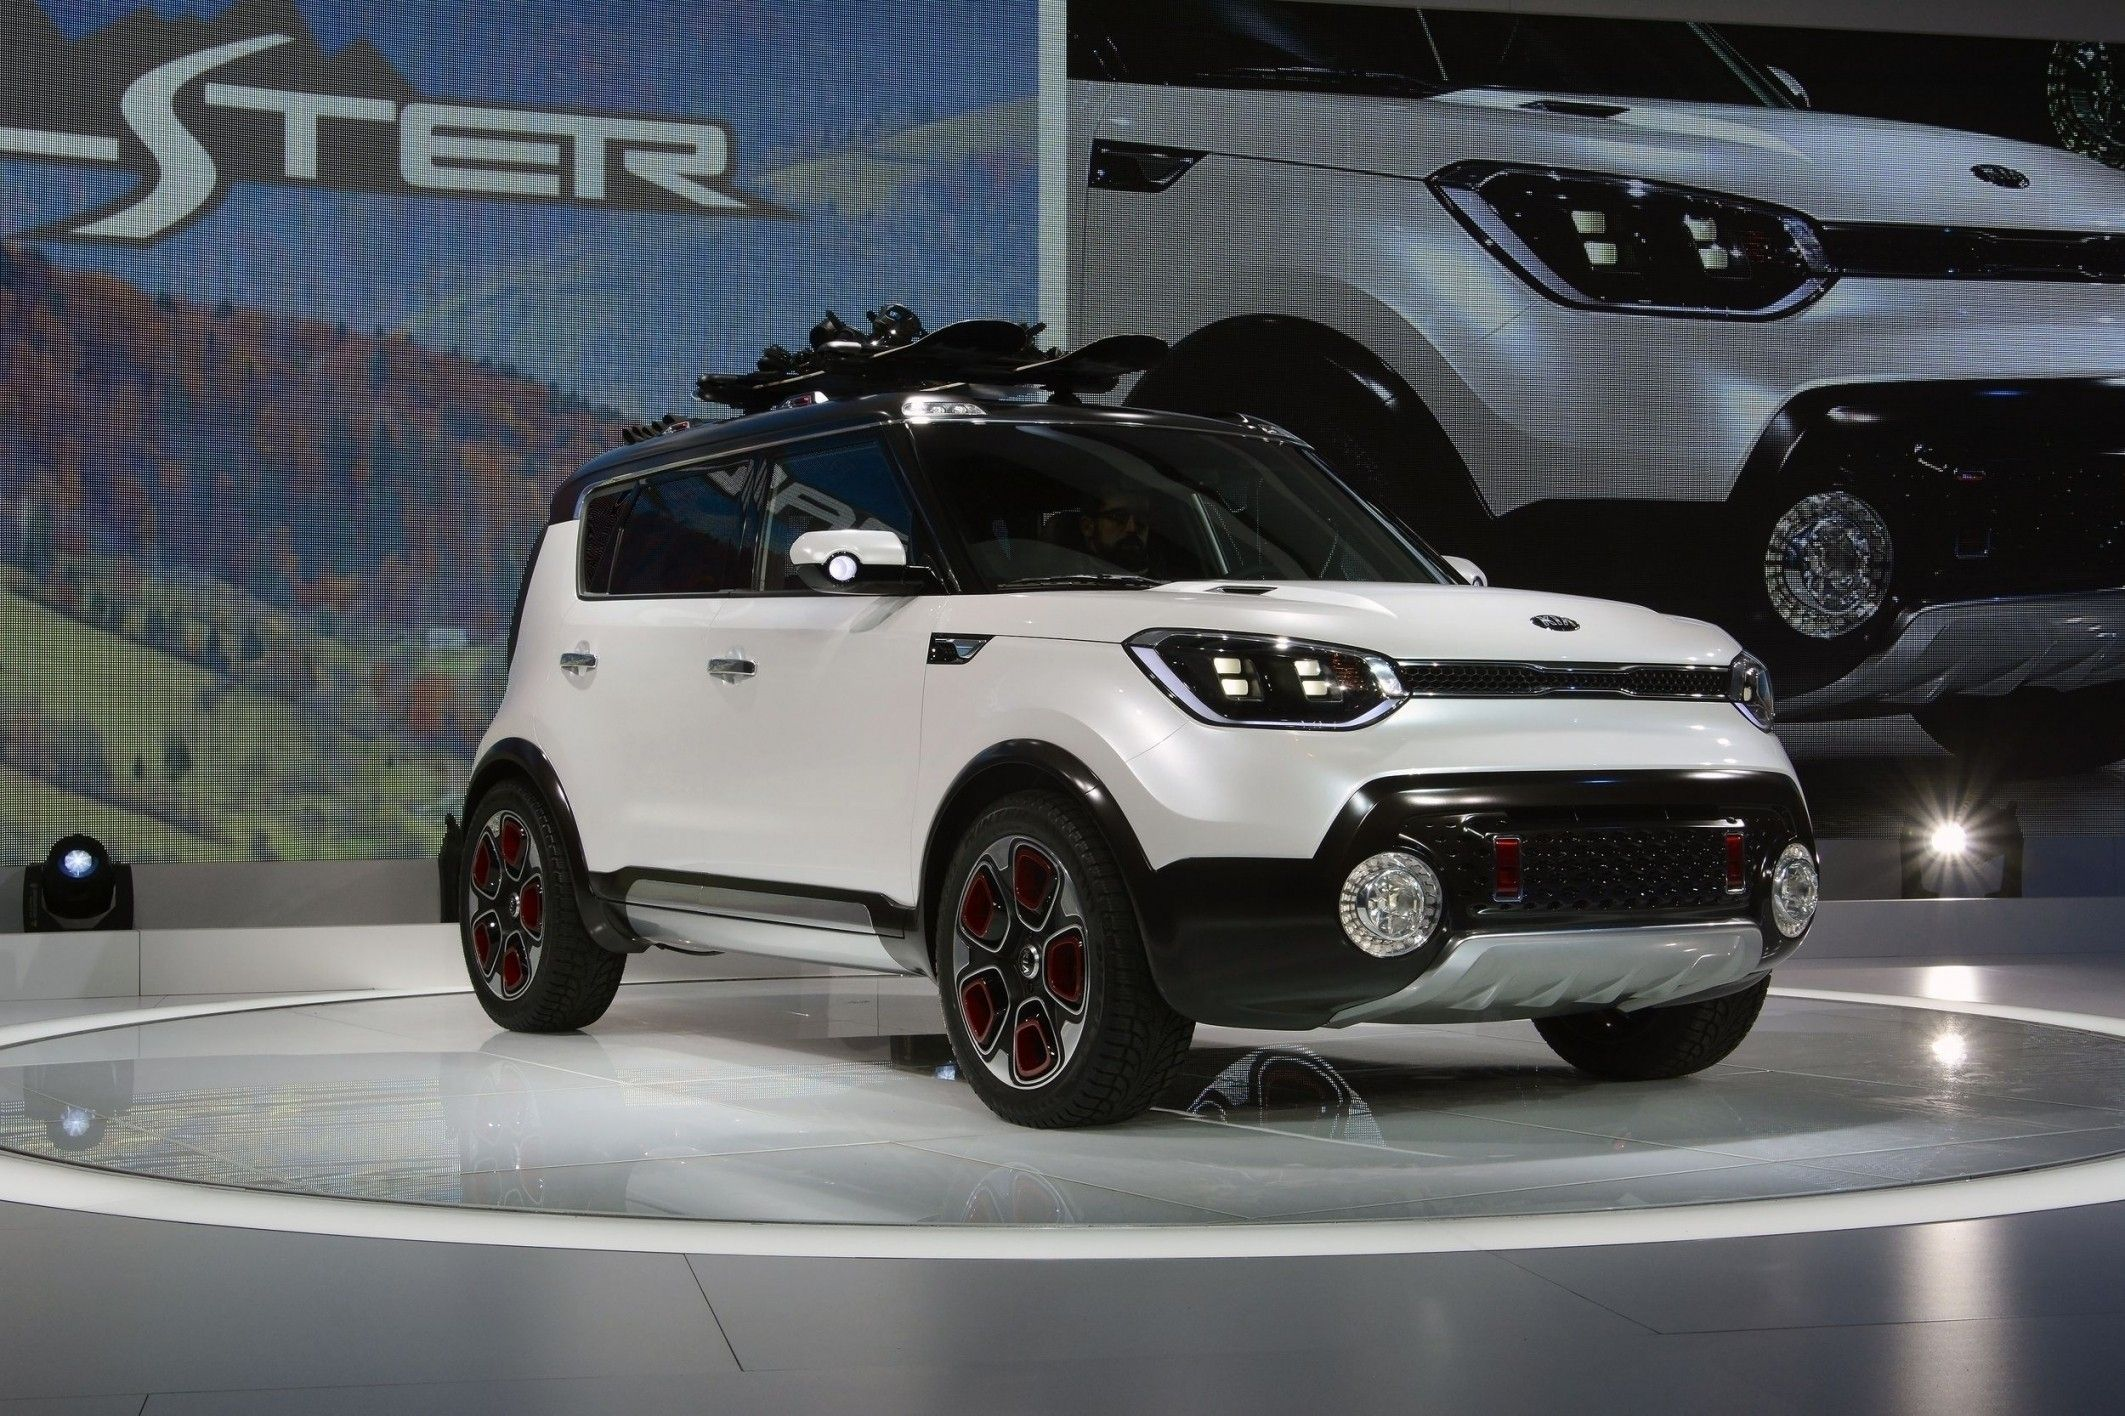 2019 Kia Soul: Coming Redesigned And Possibly With The All-wheel Drive >> 2019 Kia Soul Colors Exterior Car Gallery Cars Kia